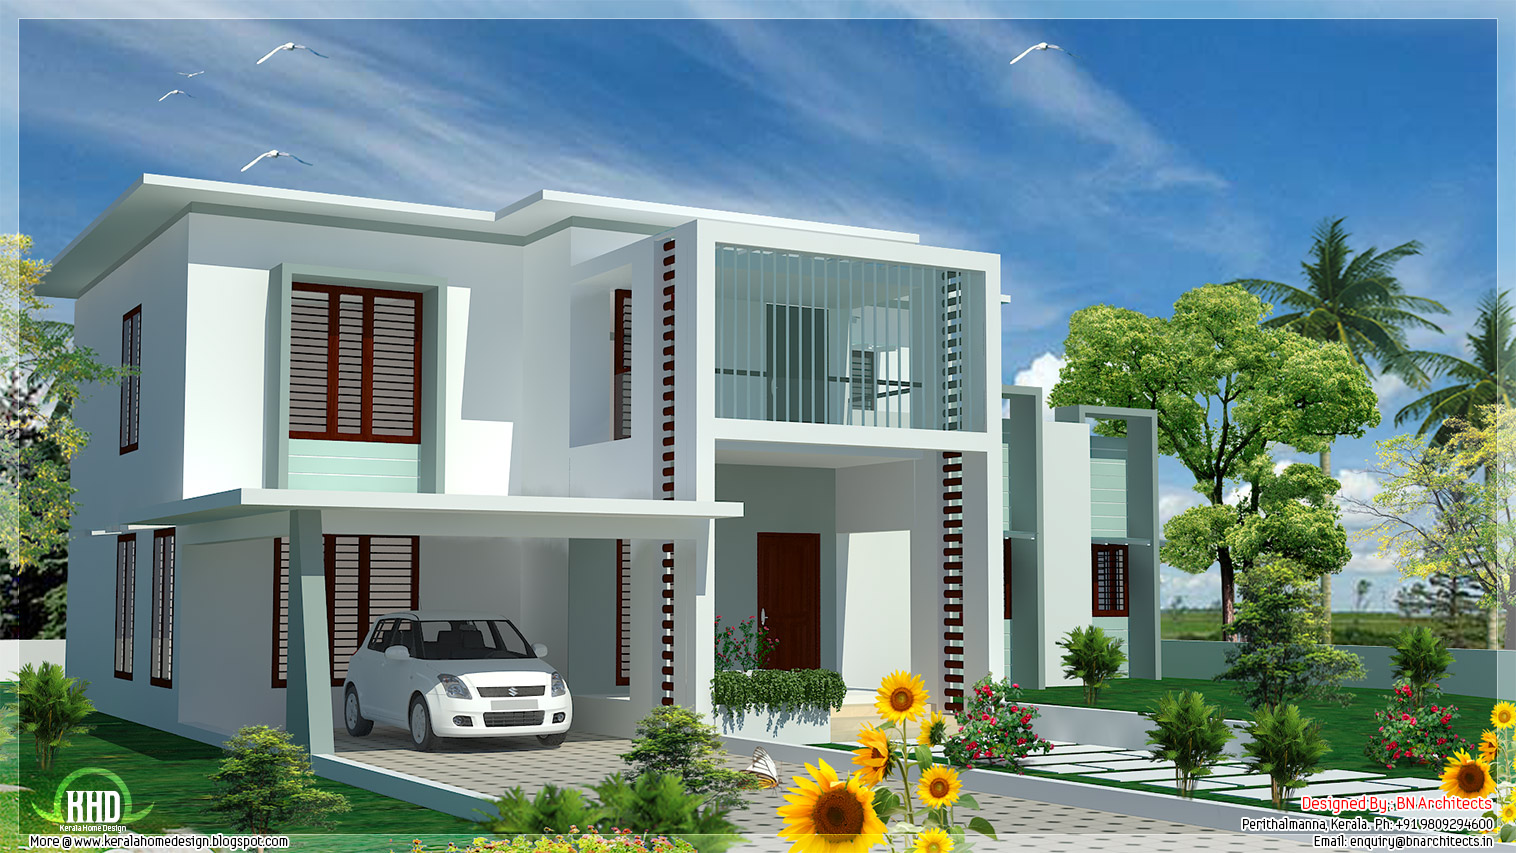 4 bedroom modern flat roof house kerala home design and - Flat roof home designs ...